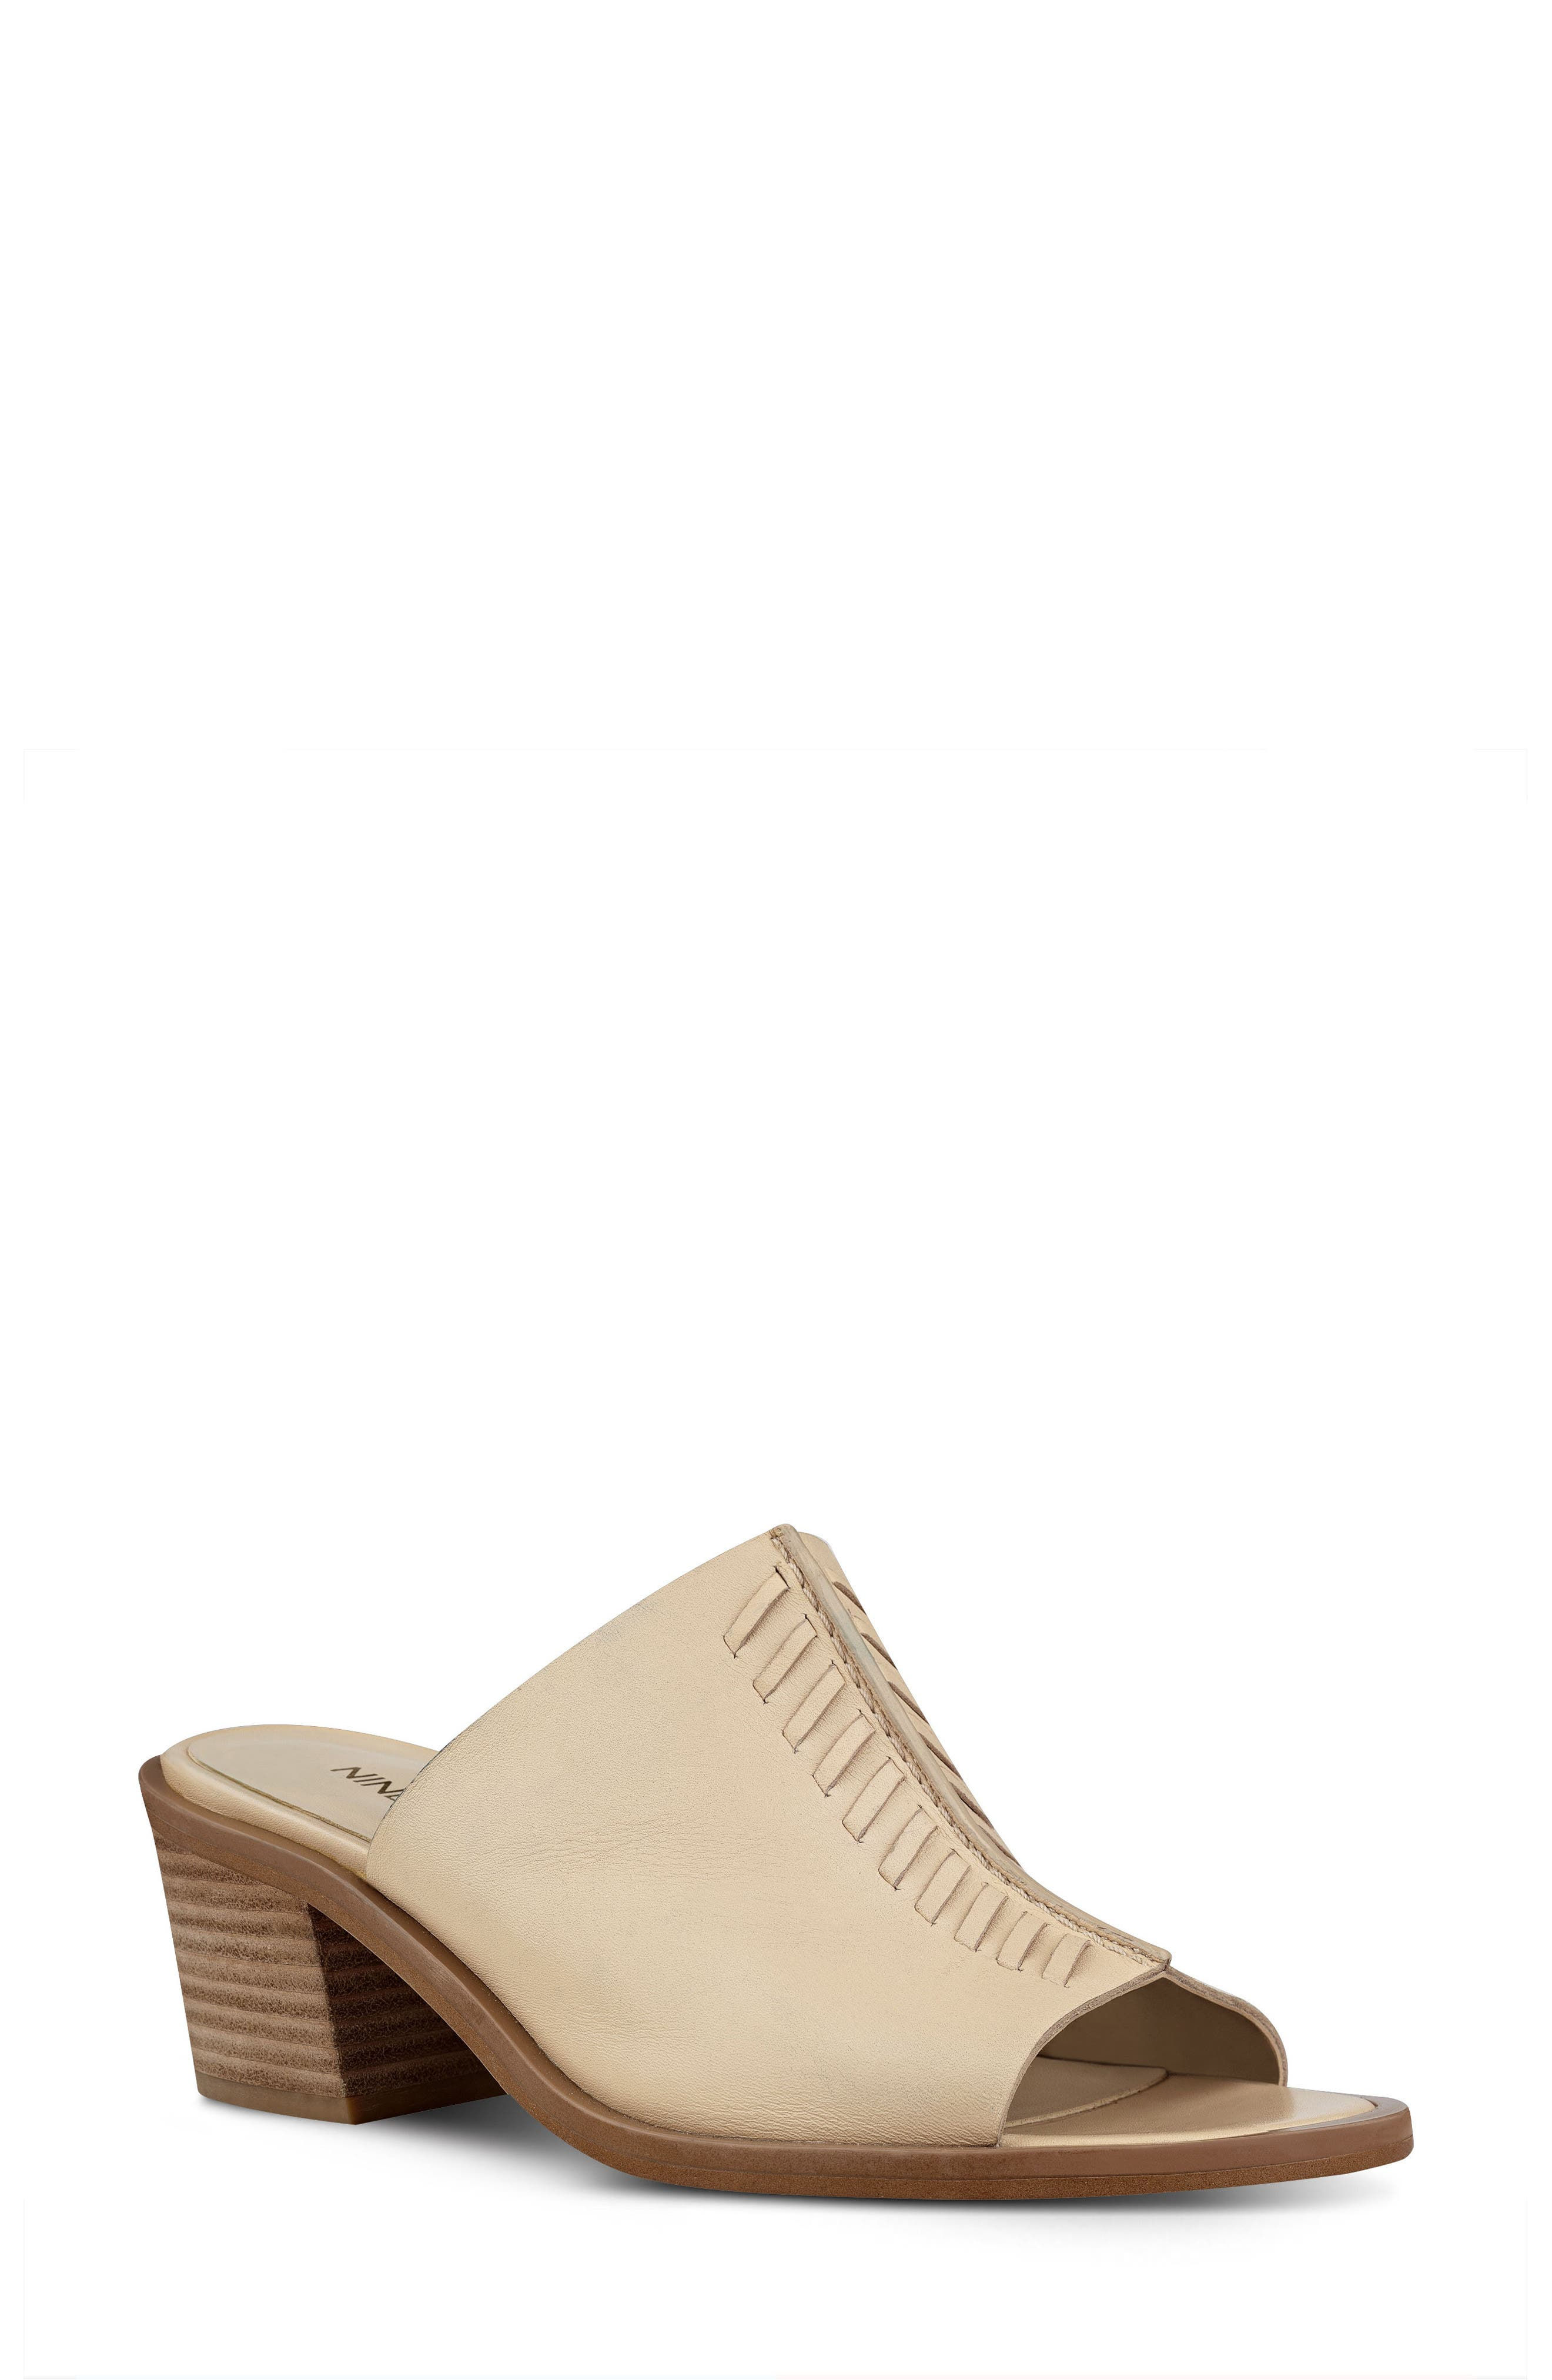 NINE WEST Rahima Sandal